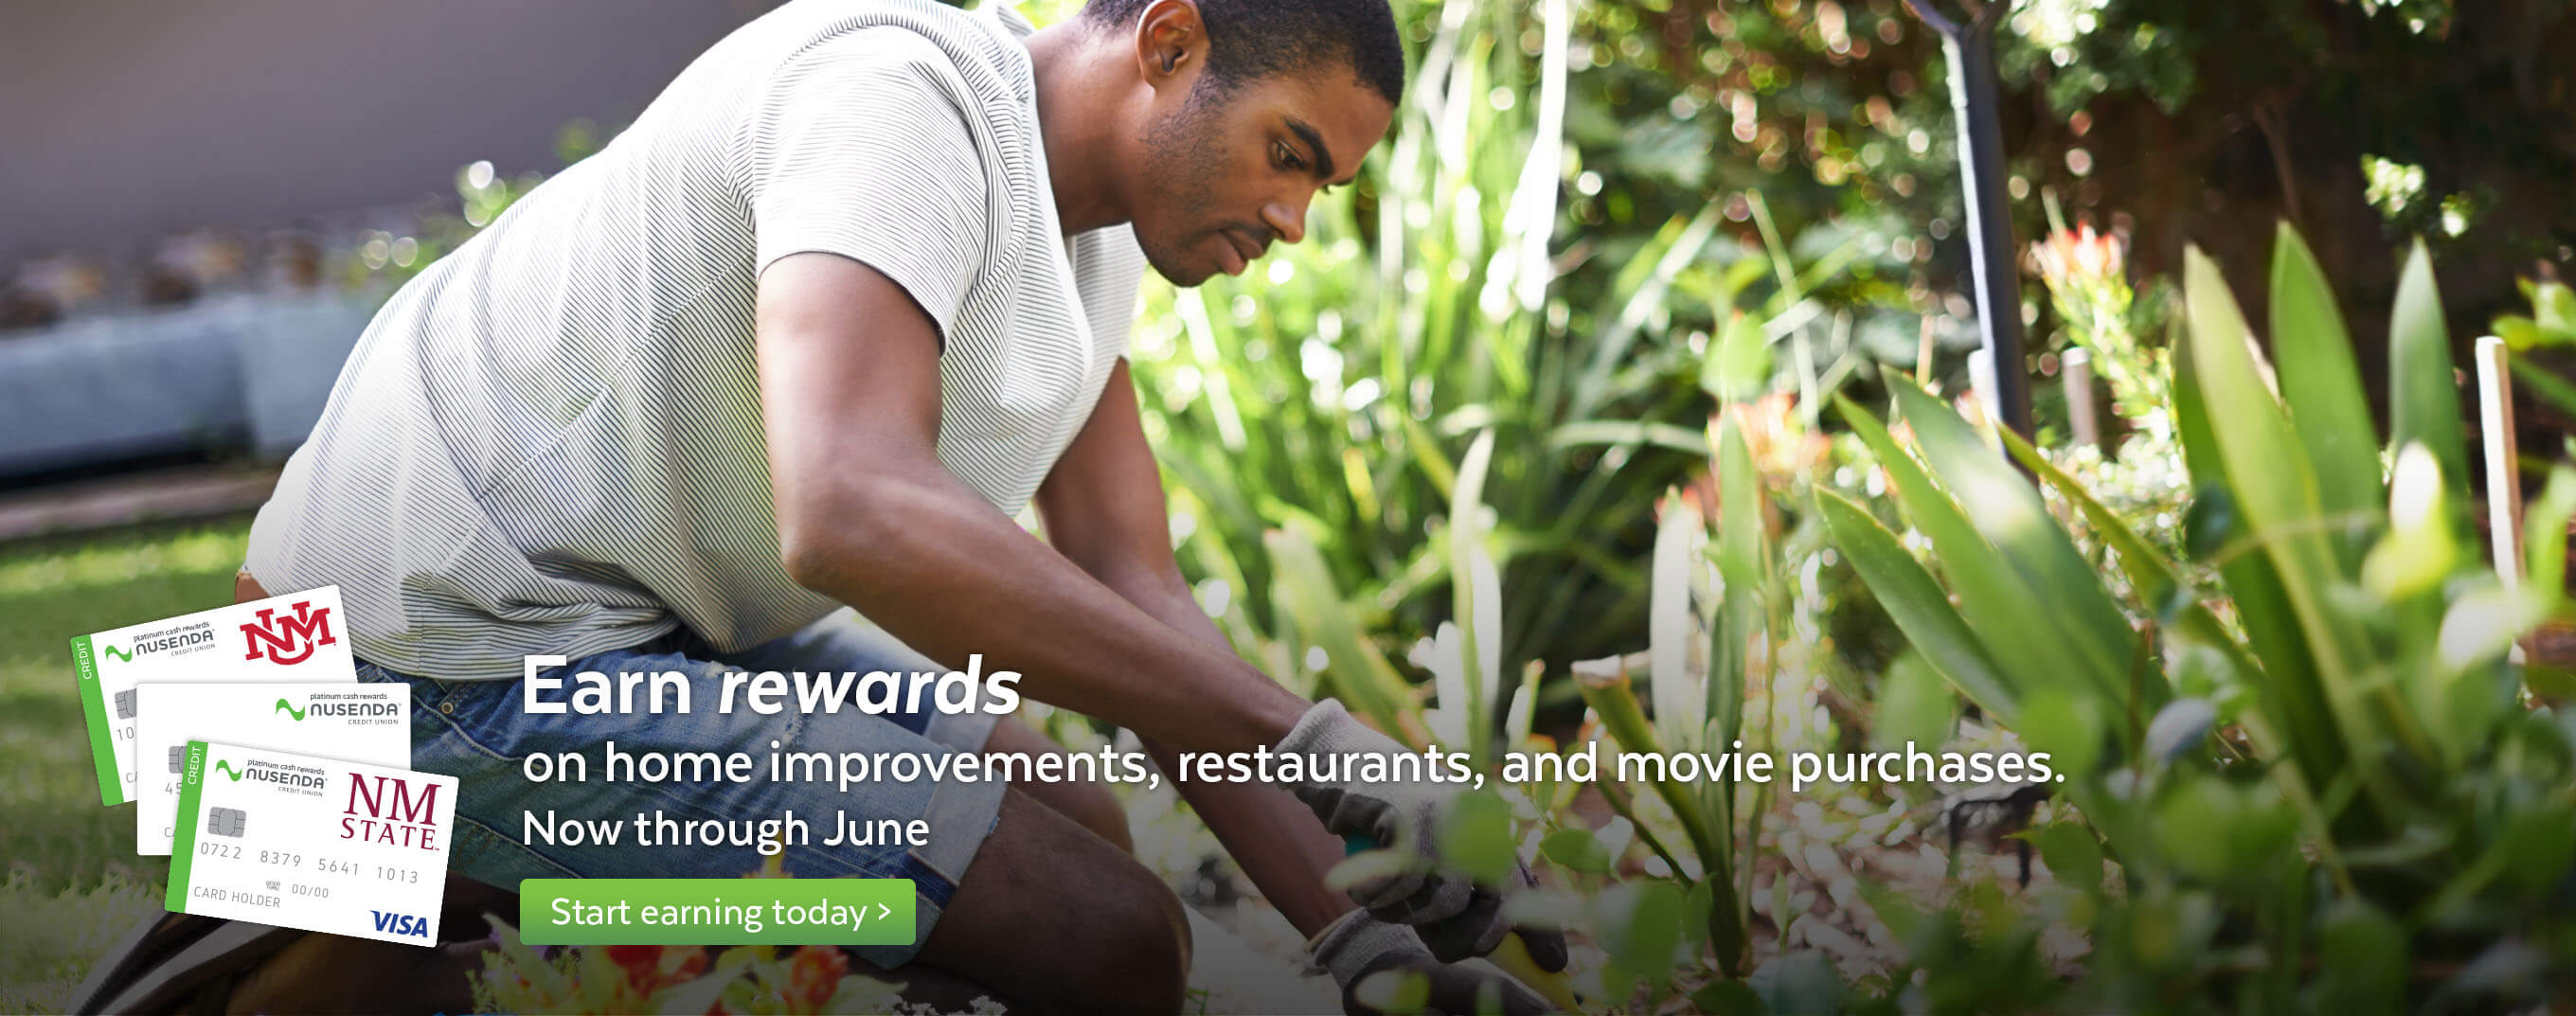 Earn rewards on restaurants, movies, and home improvement purchases.